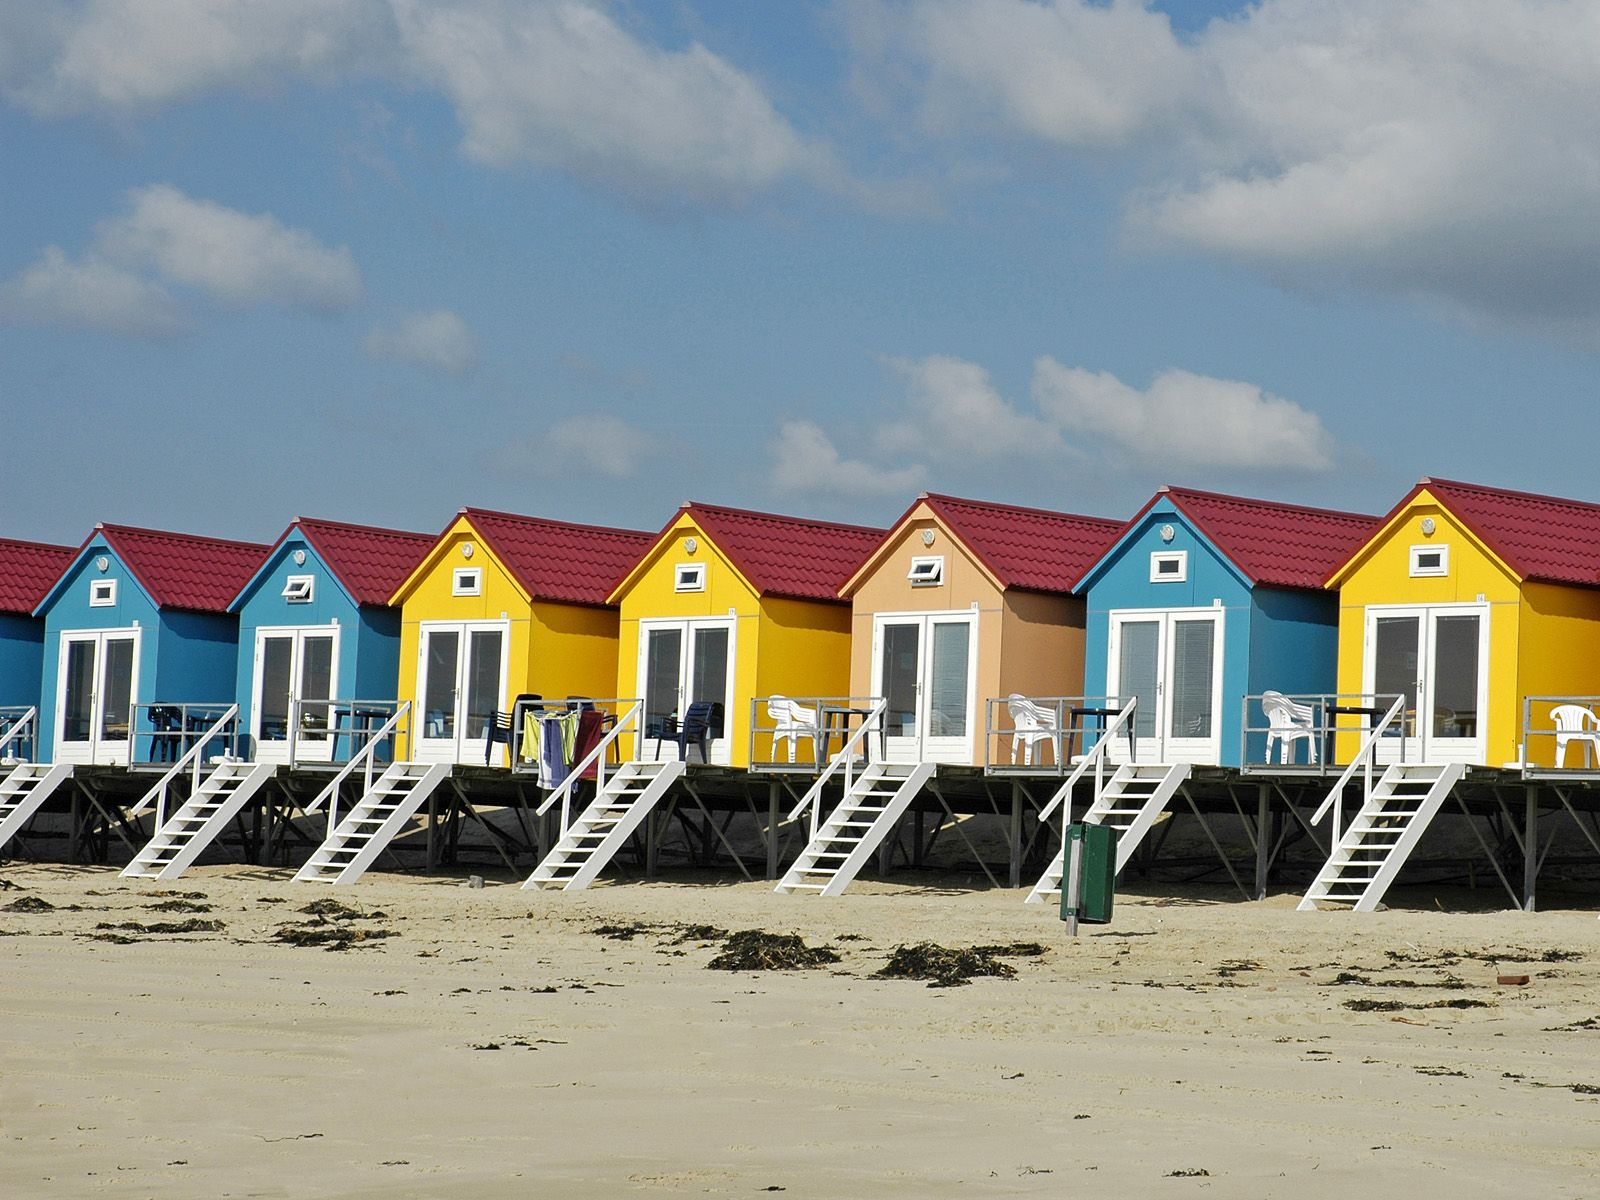 vlissingen zeeland nederland beach huts vlissingen. Black Bedroom Furniture Sets. Home Design Ideas